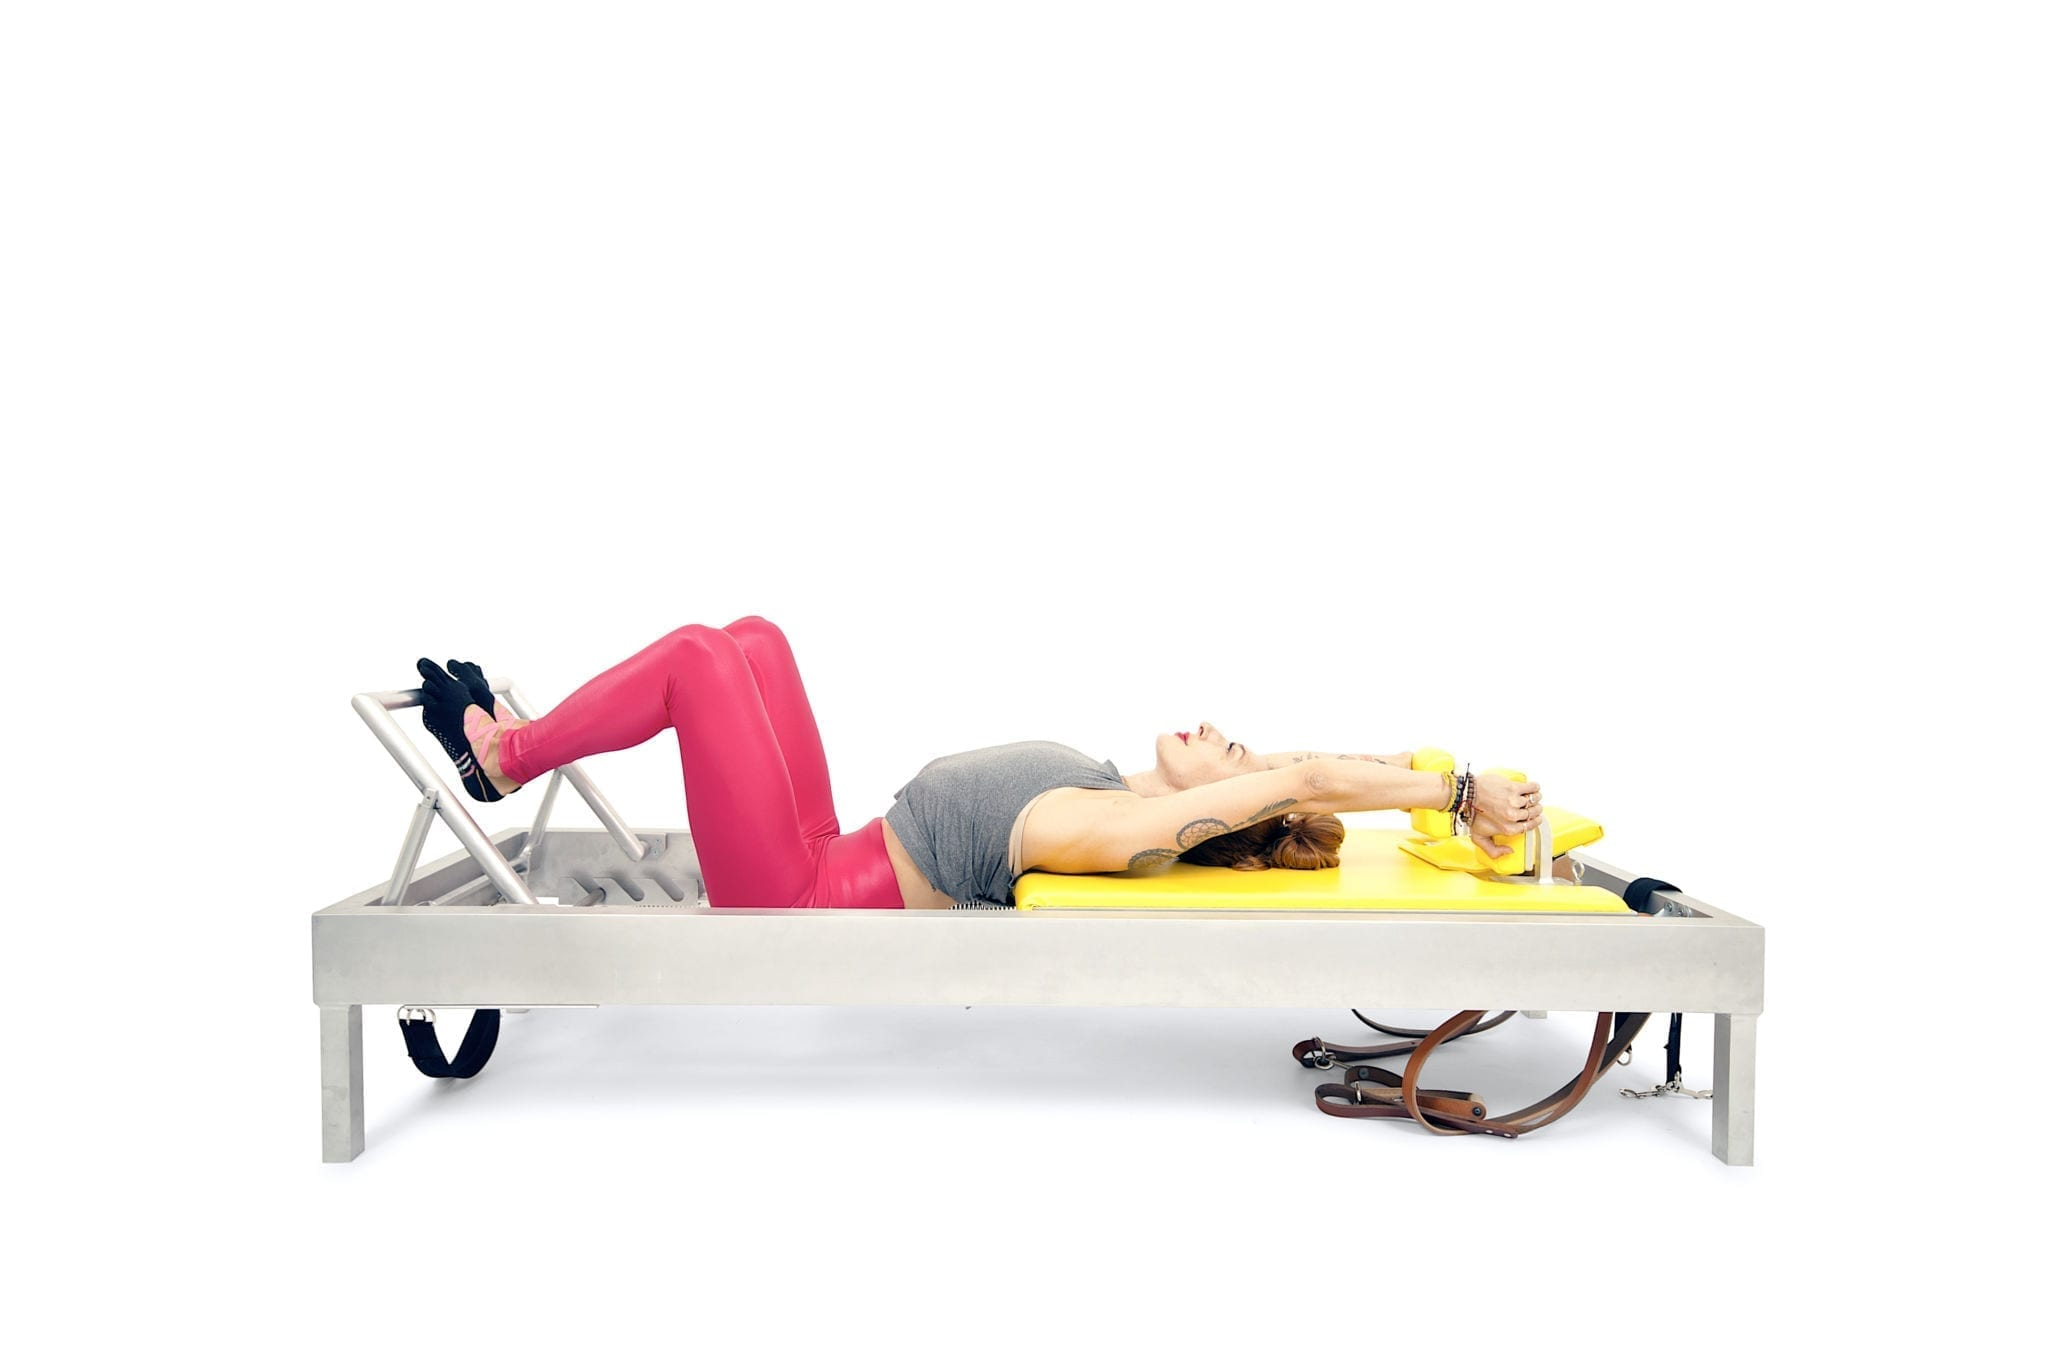 Semi Circle on the Reformer | Online Pilates Classes